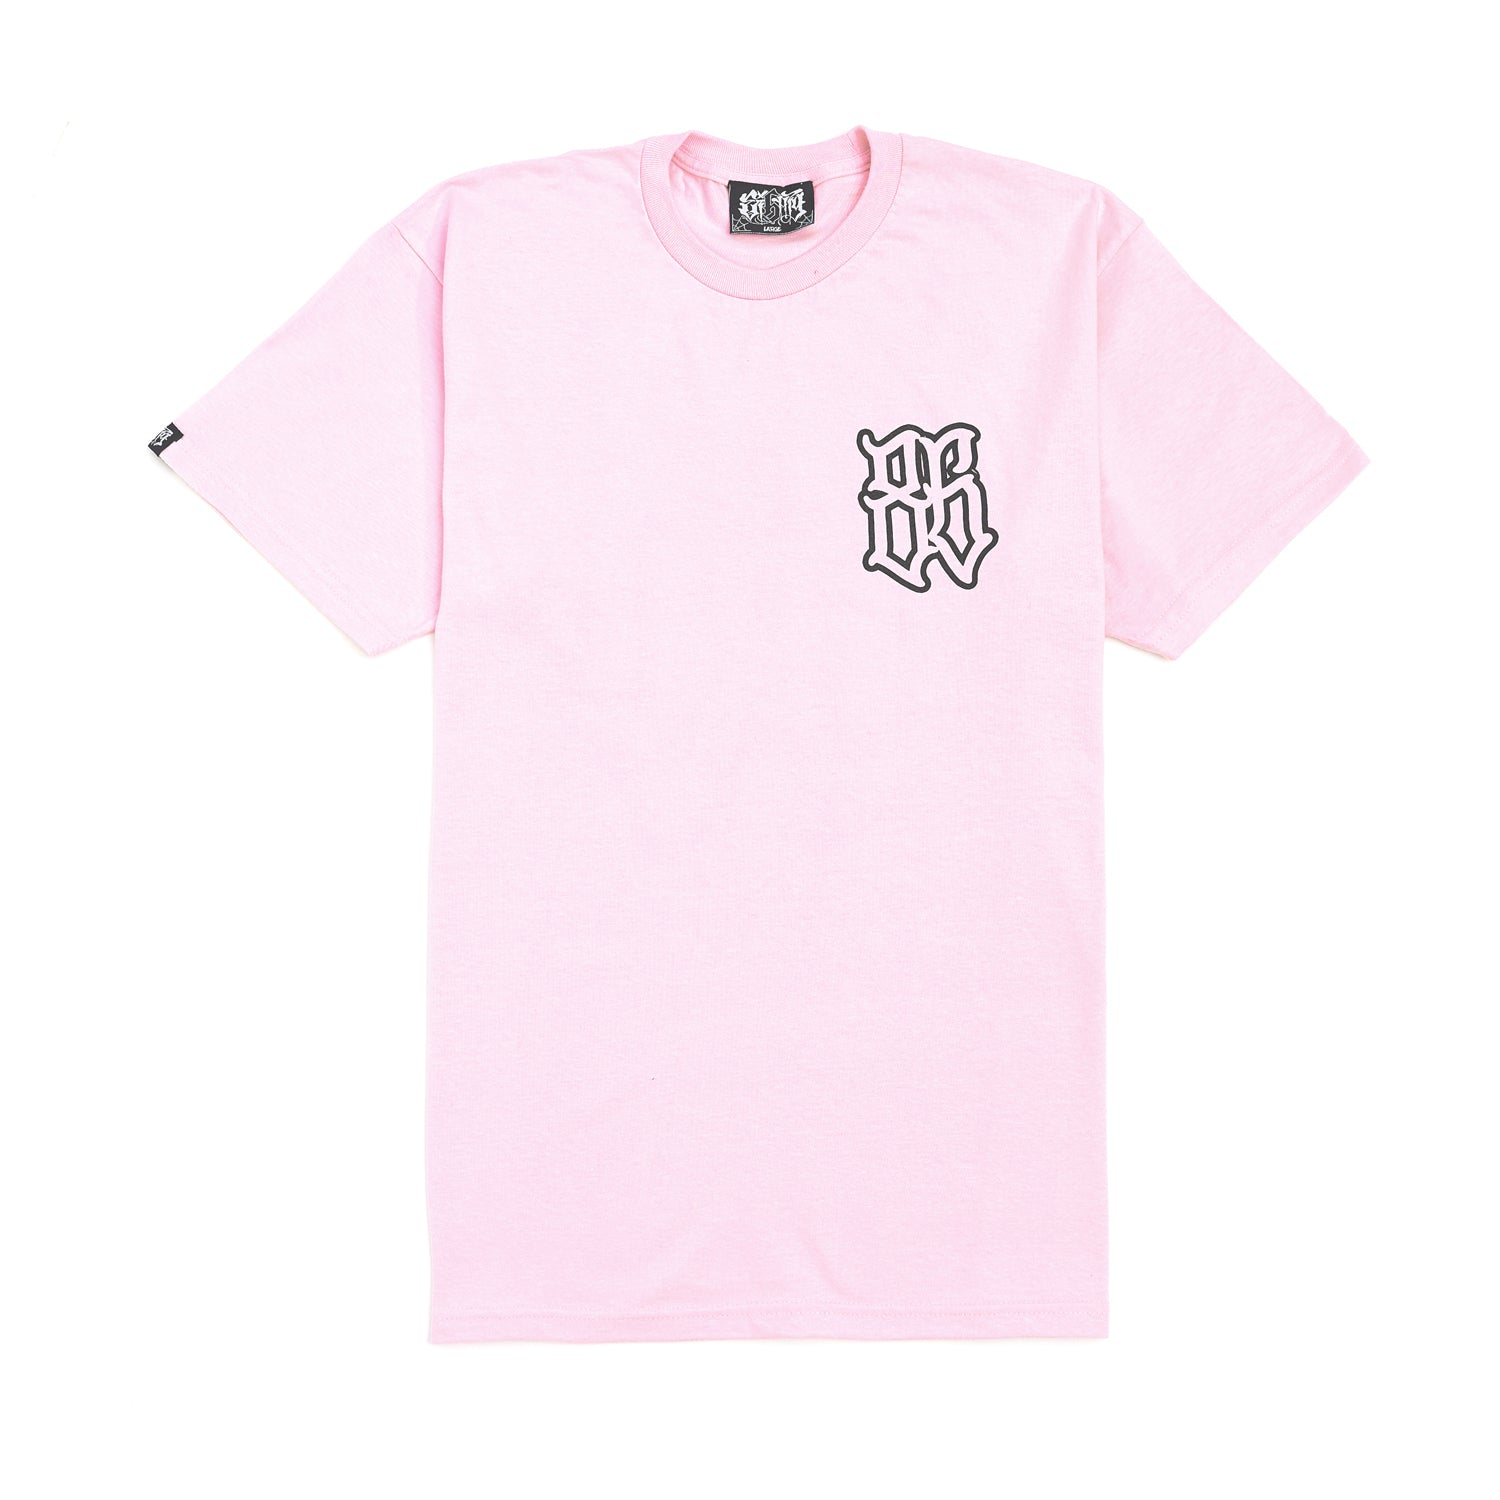 Eighty6 86er Kids Tee - Pink